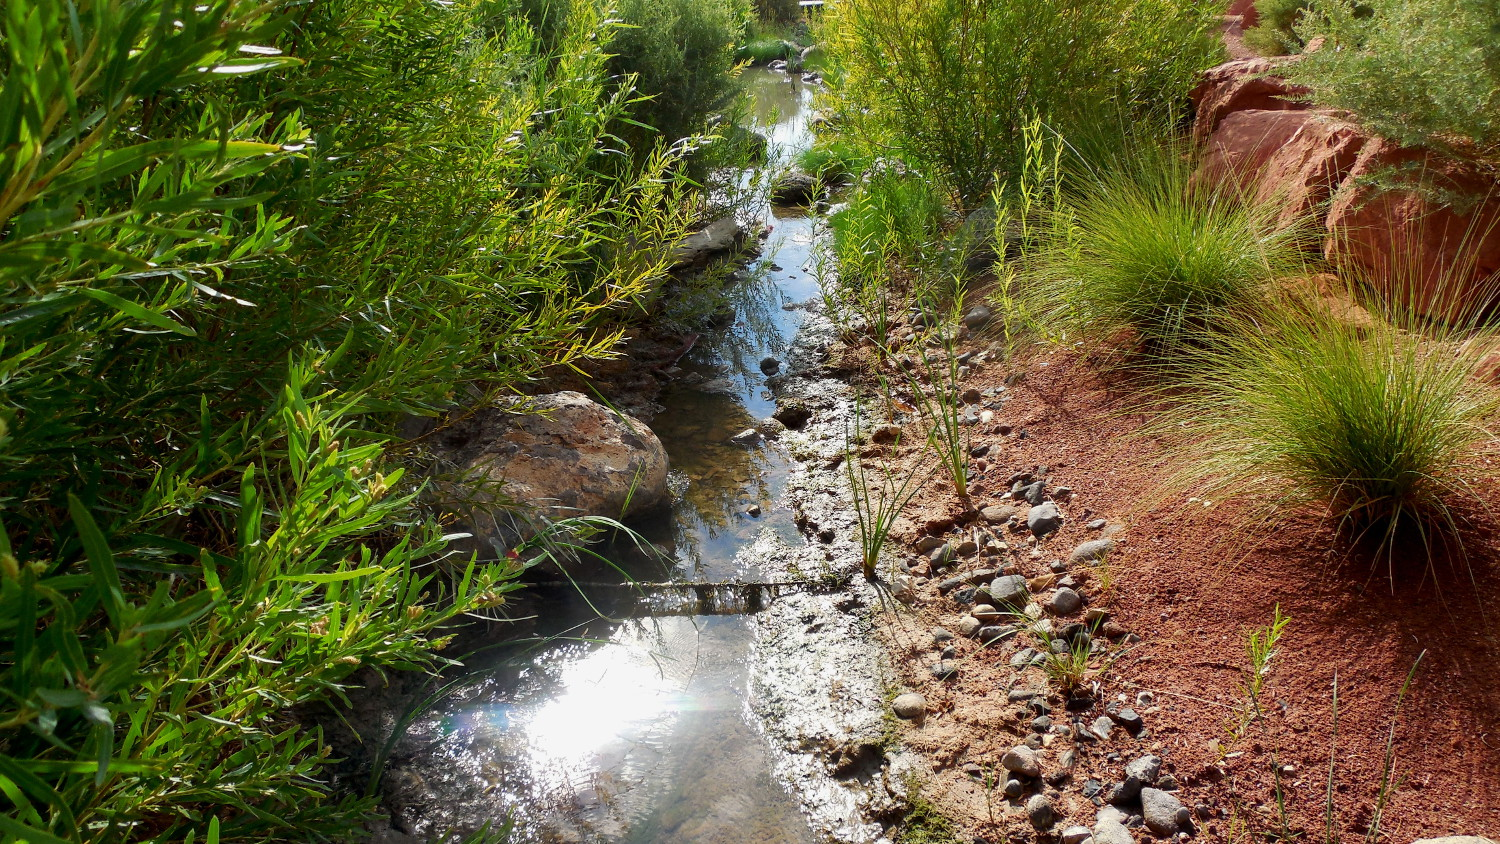 Biologists began capturing native fish and draining the stream at Red Hills Desert Garden Monday morning, St. George, Utah, Aug. 22, 2016 | Photo by Julie Applegate, St. George News